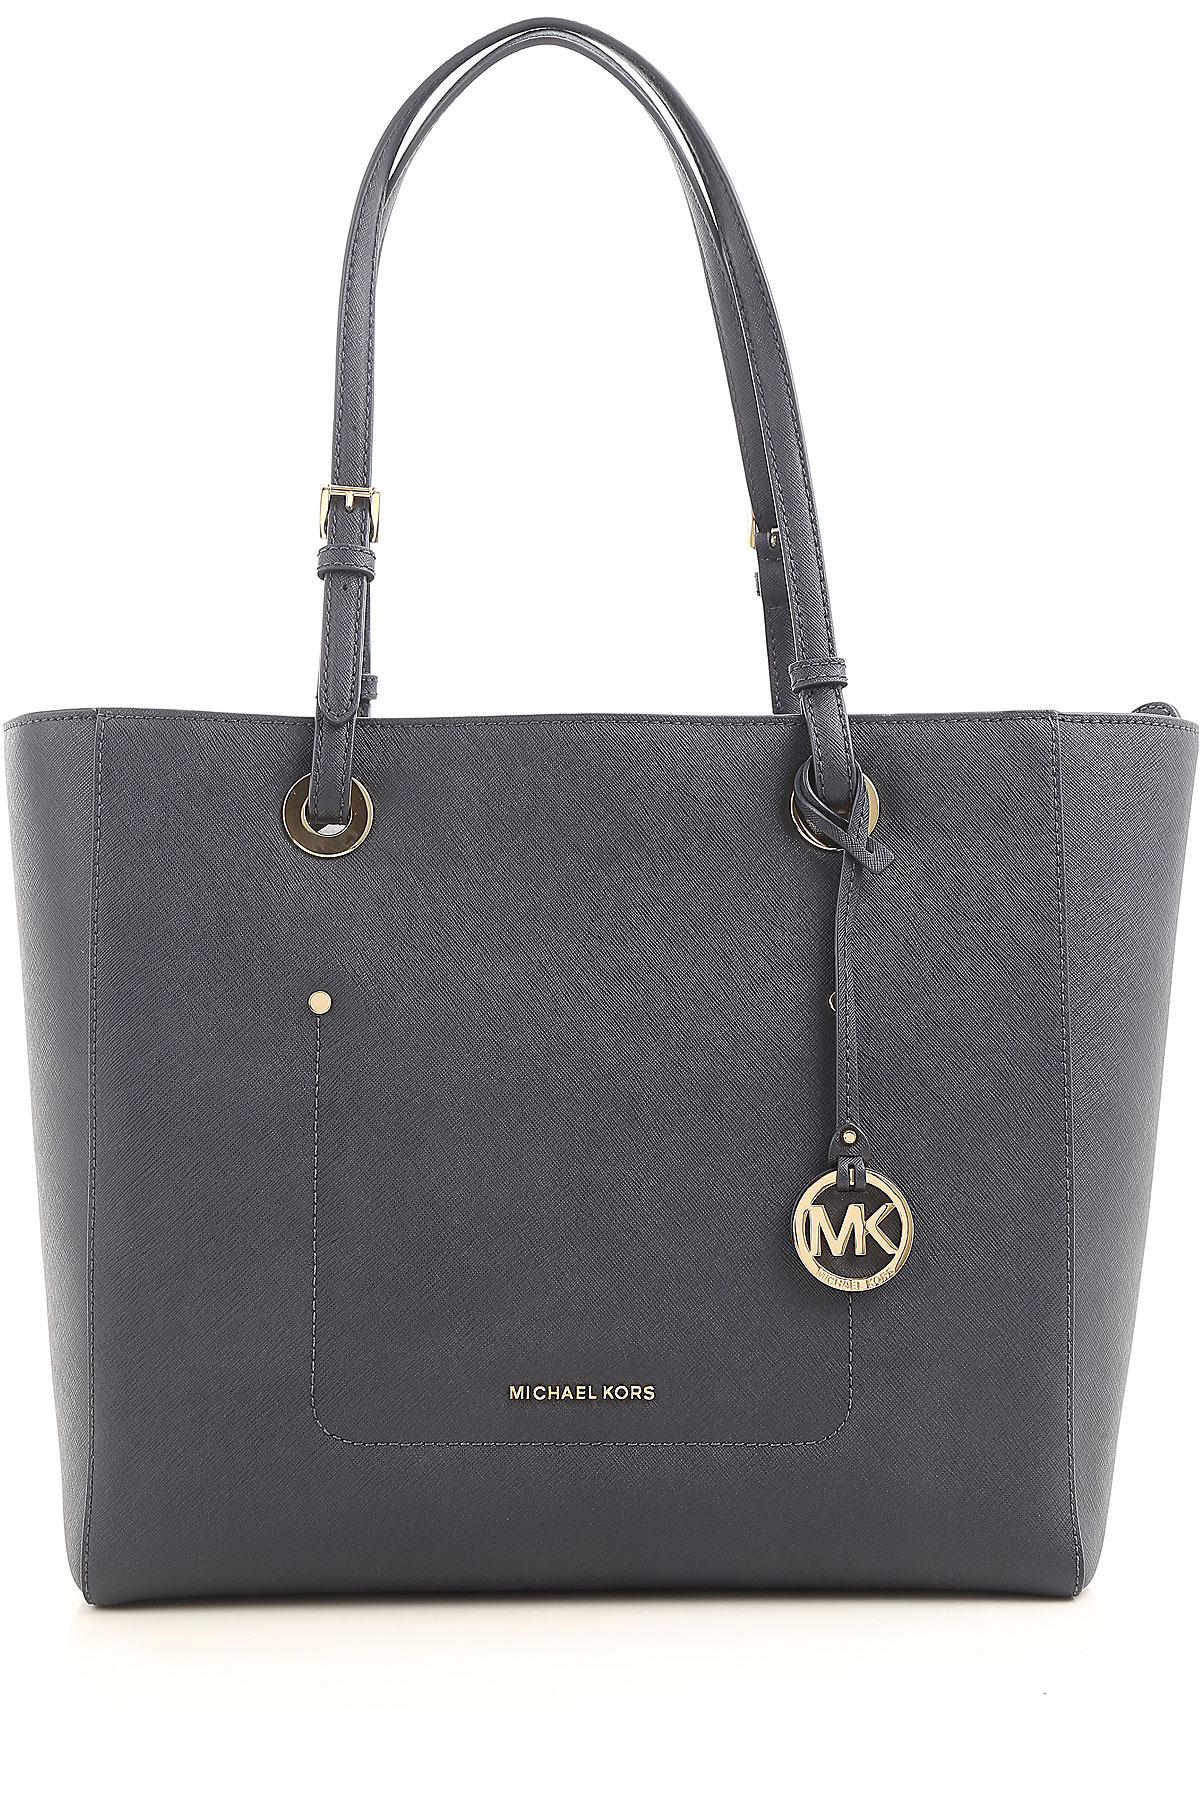 Michael Kors Tote Bag On Sale, Admiral Blue, Leather, 2017